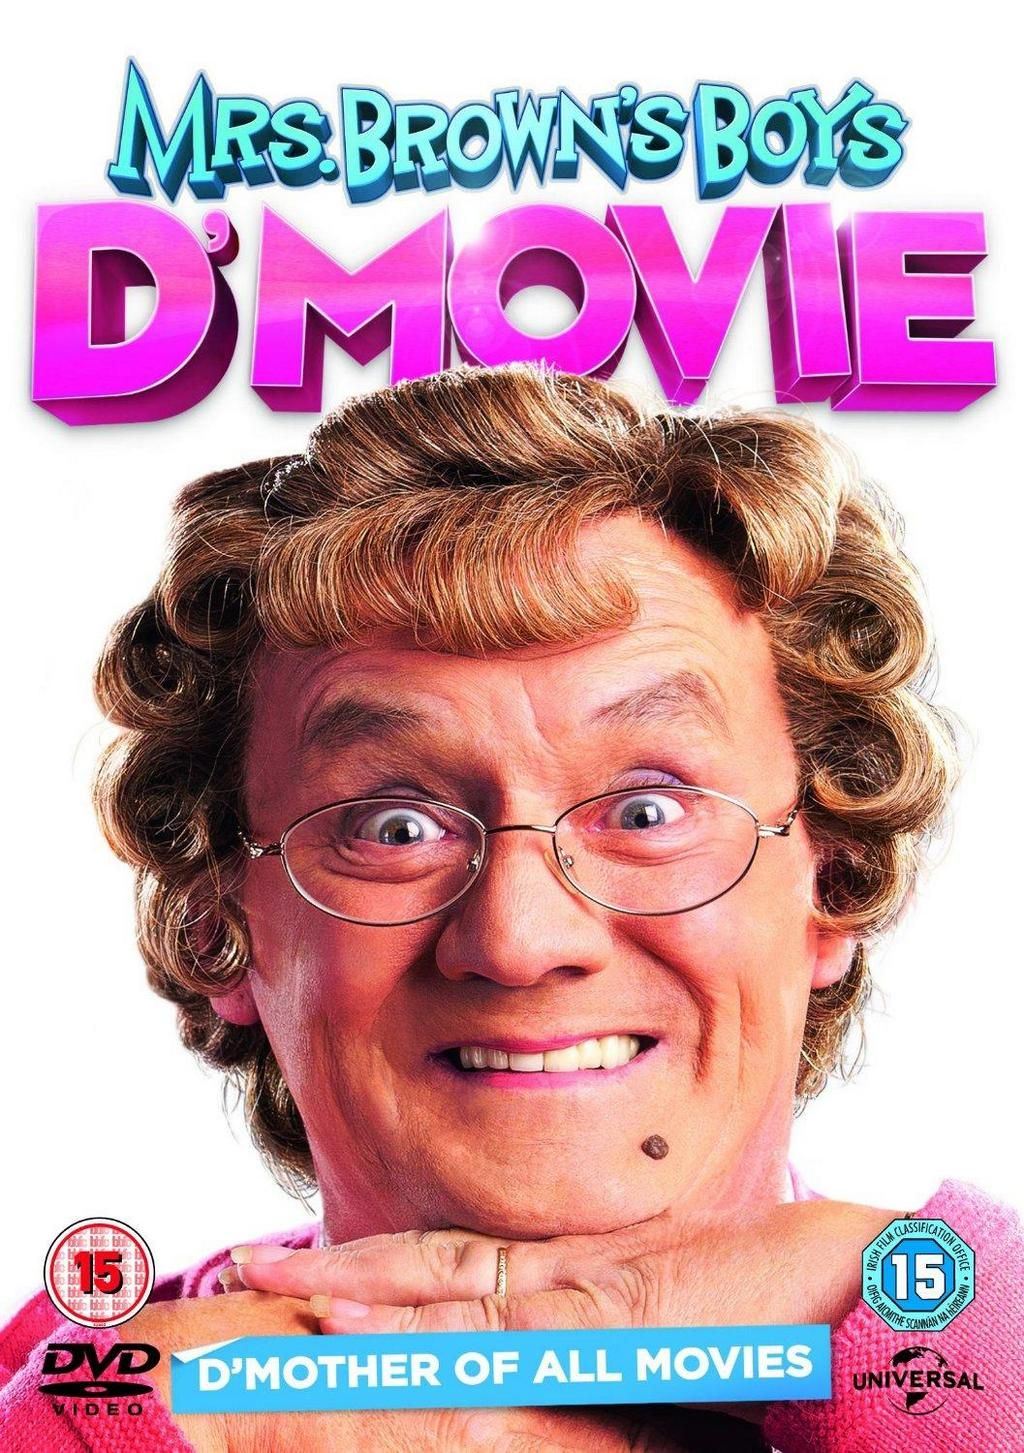 LOWEST EVER PRICE DROP Mrs Brown's Boys D'Movie DVD NOW £9.99